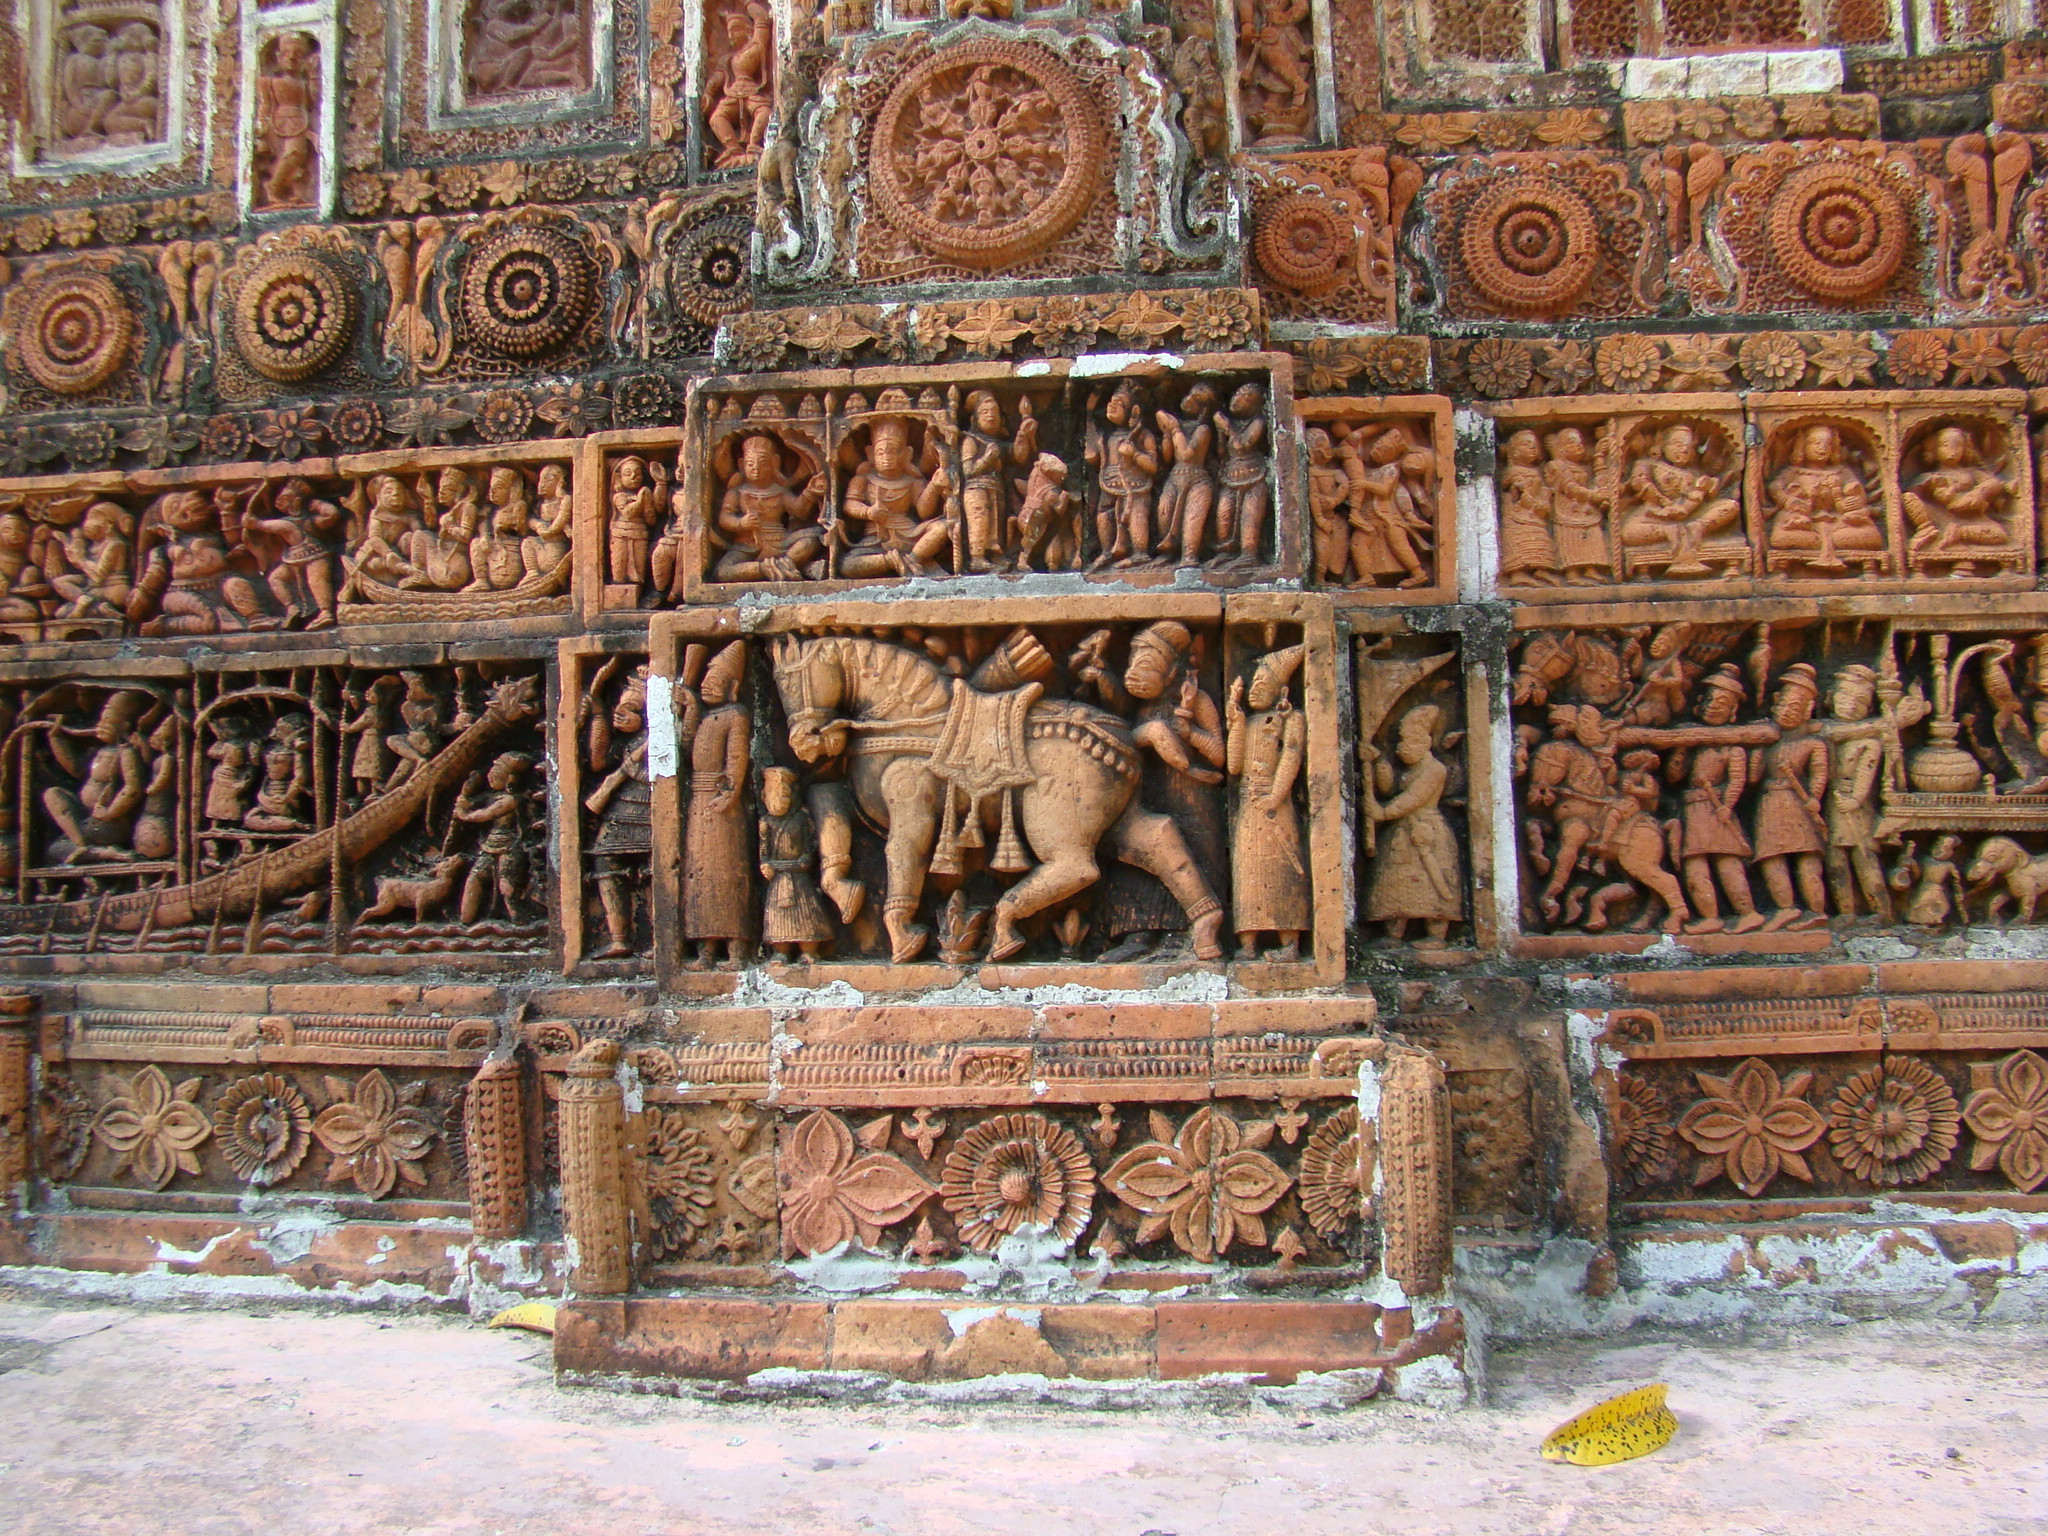 old hindu temples outside photo essay ramani s blog kantaji kantanagar temple dinajpur photo shahnoor habib munmun